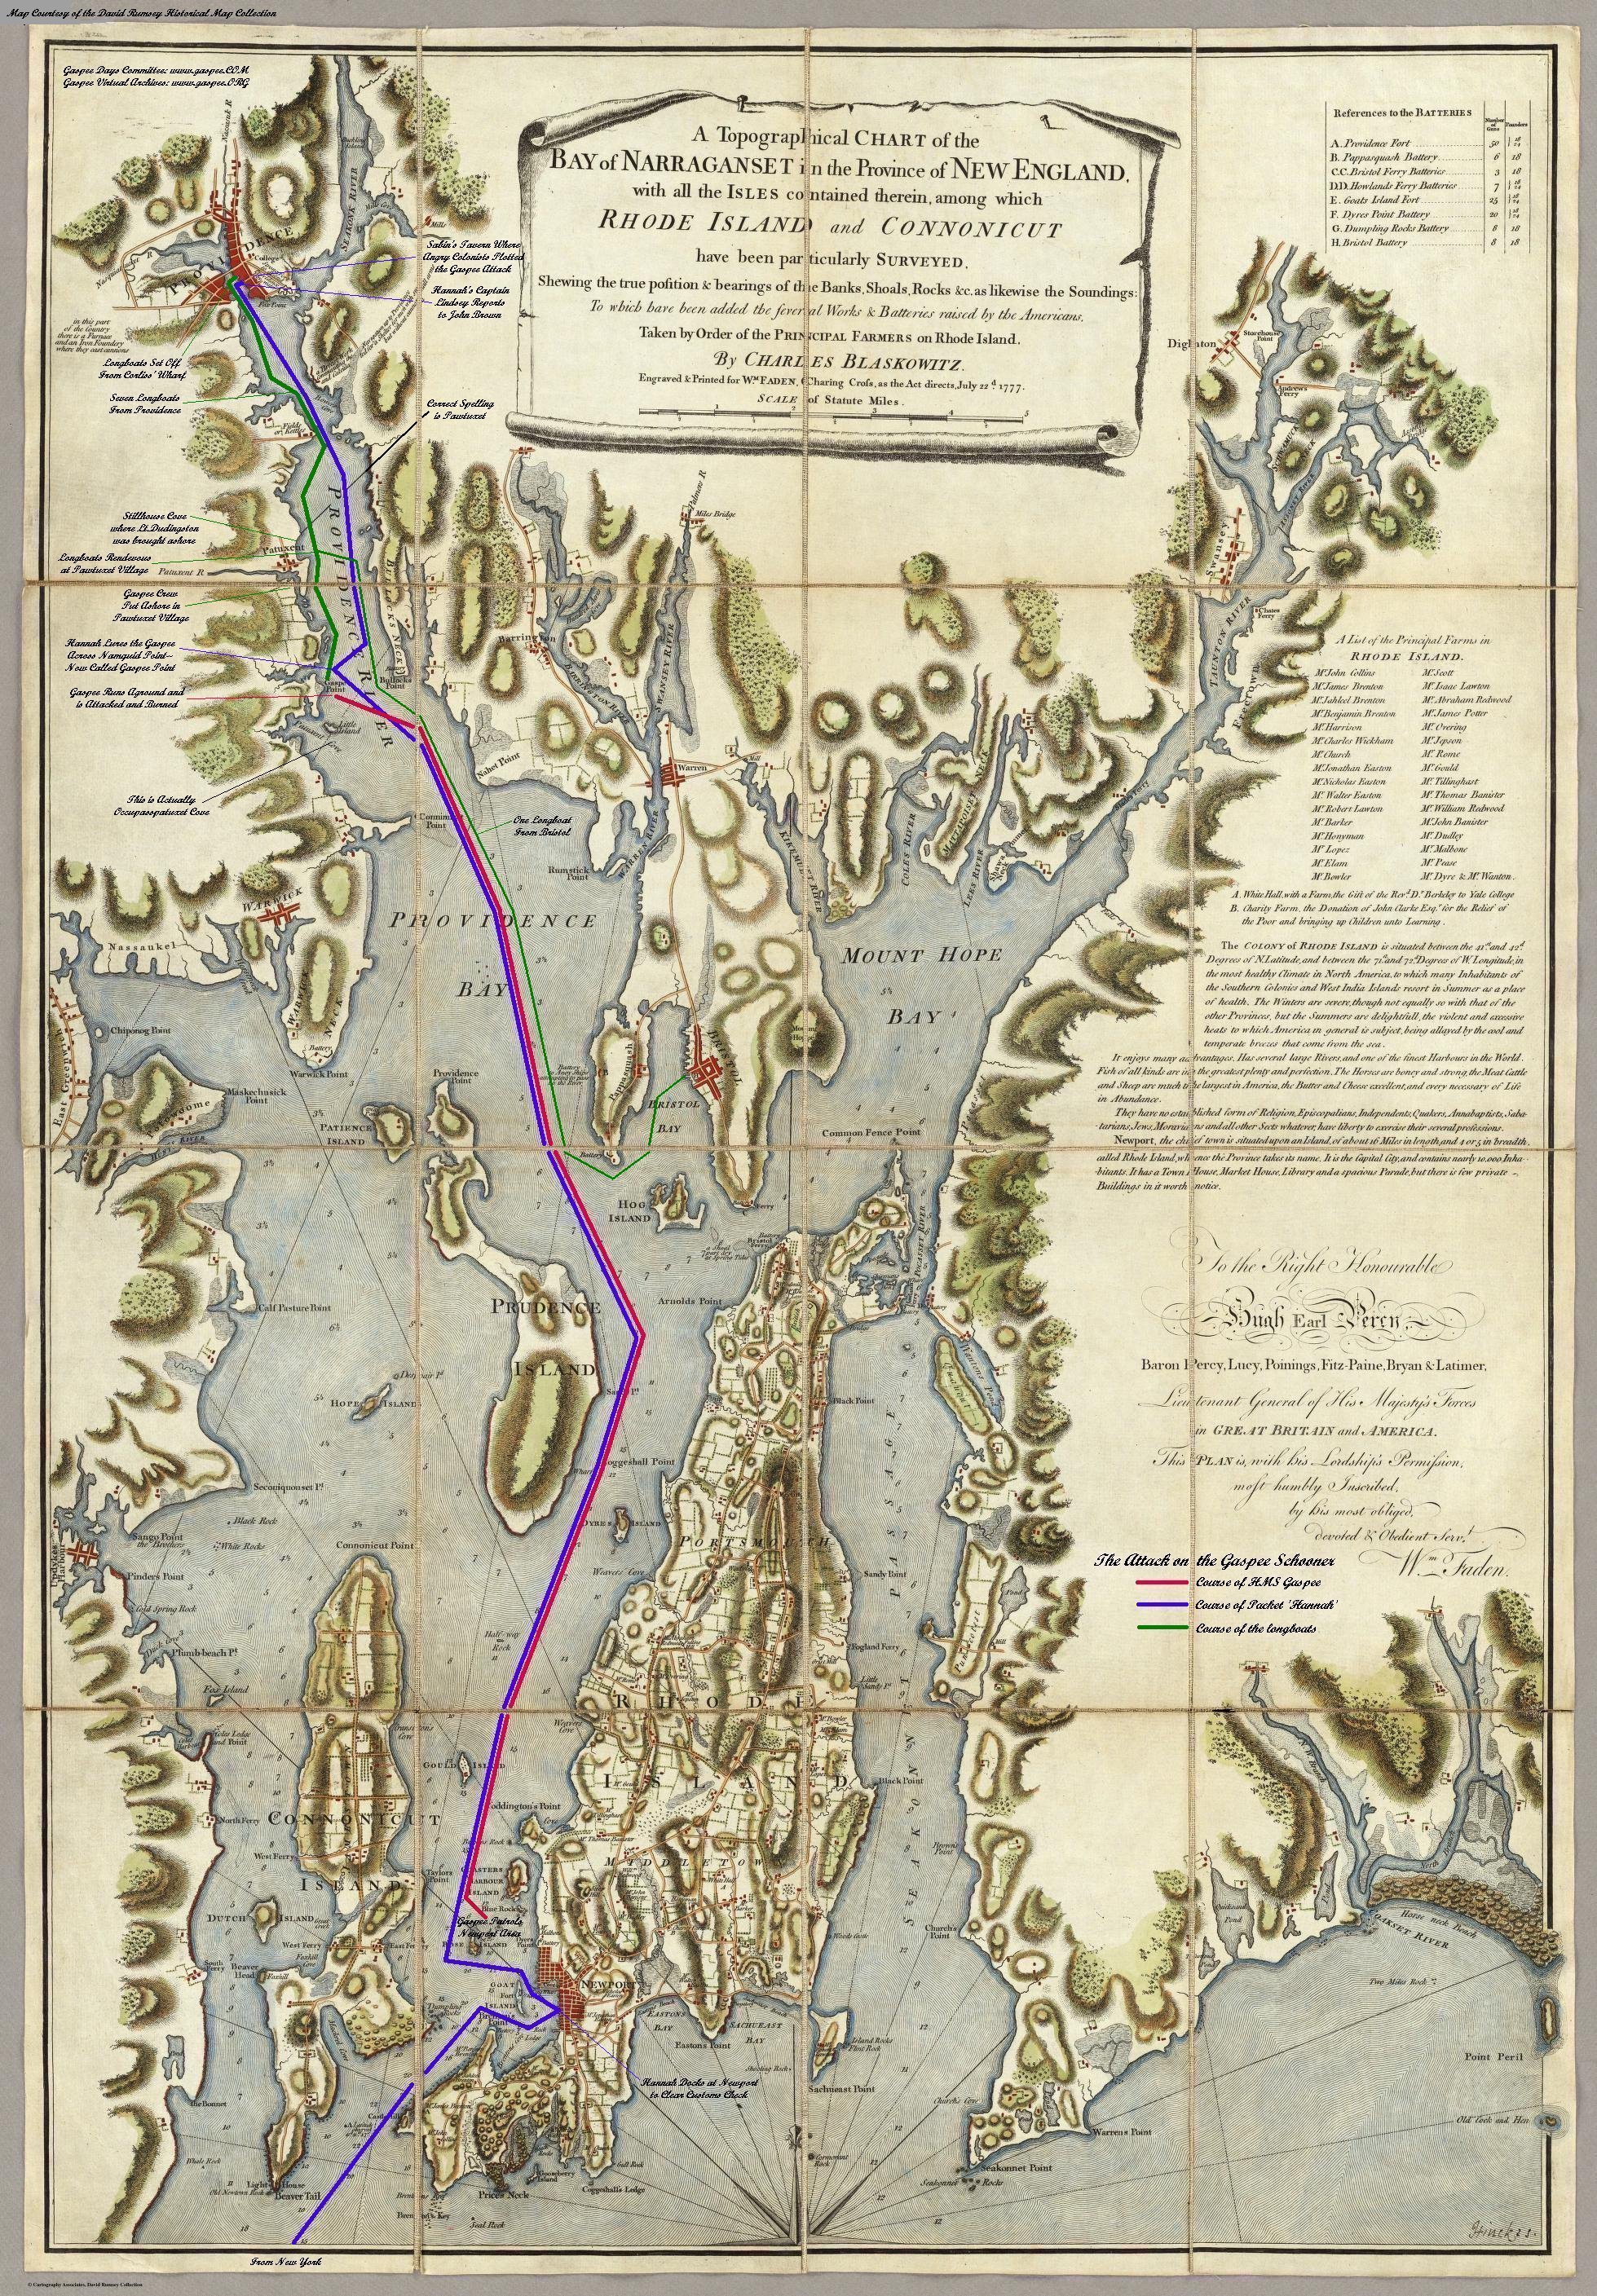 Map showing the location of Fenner's Wharf (top left)and the progression of the Gaspee Incident (gaspee.org)